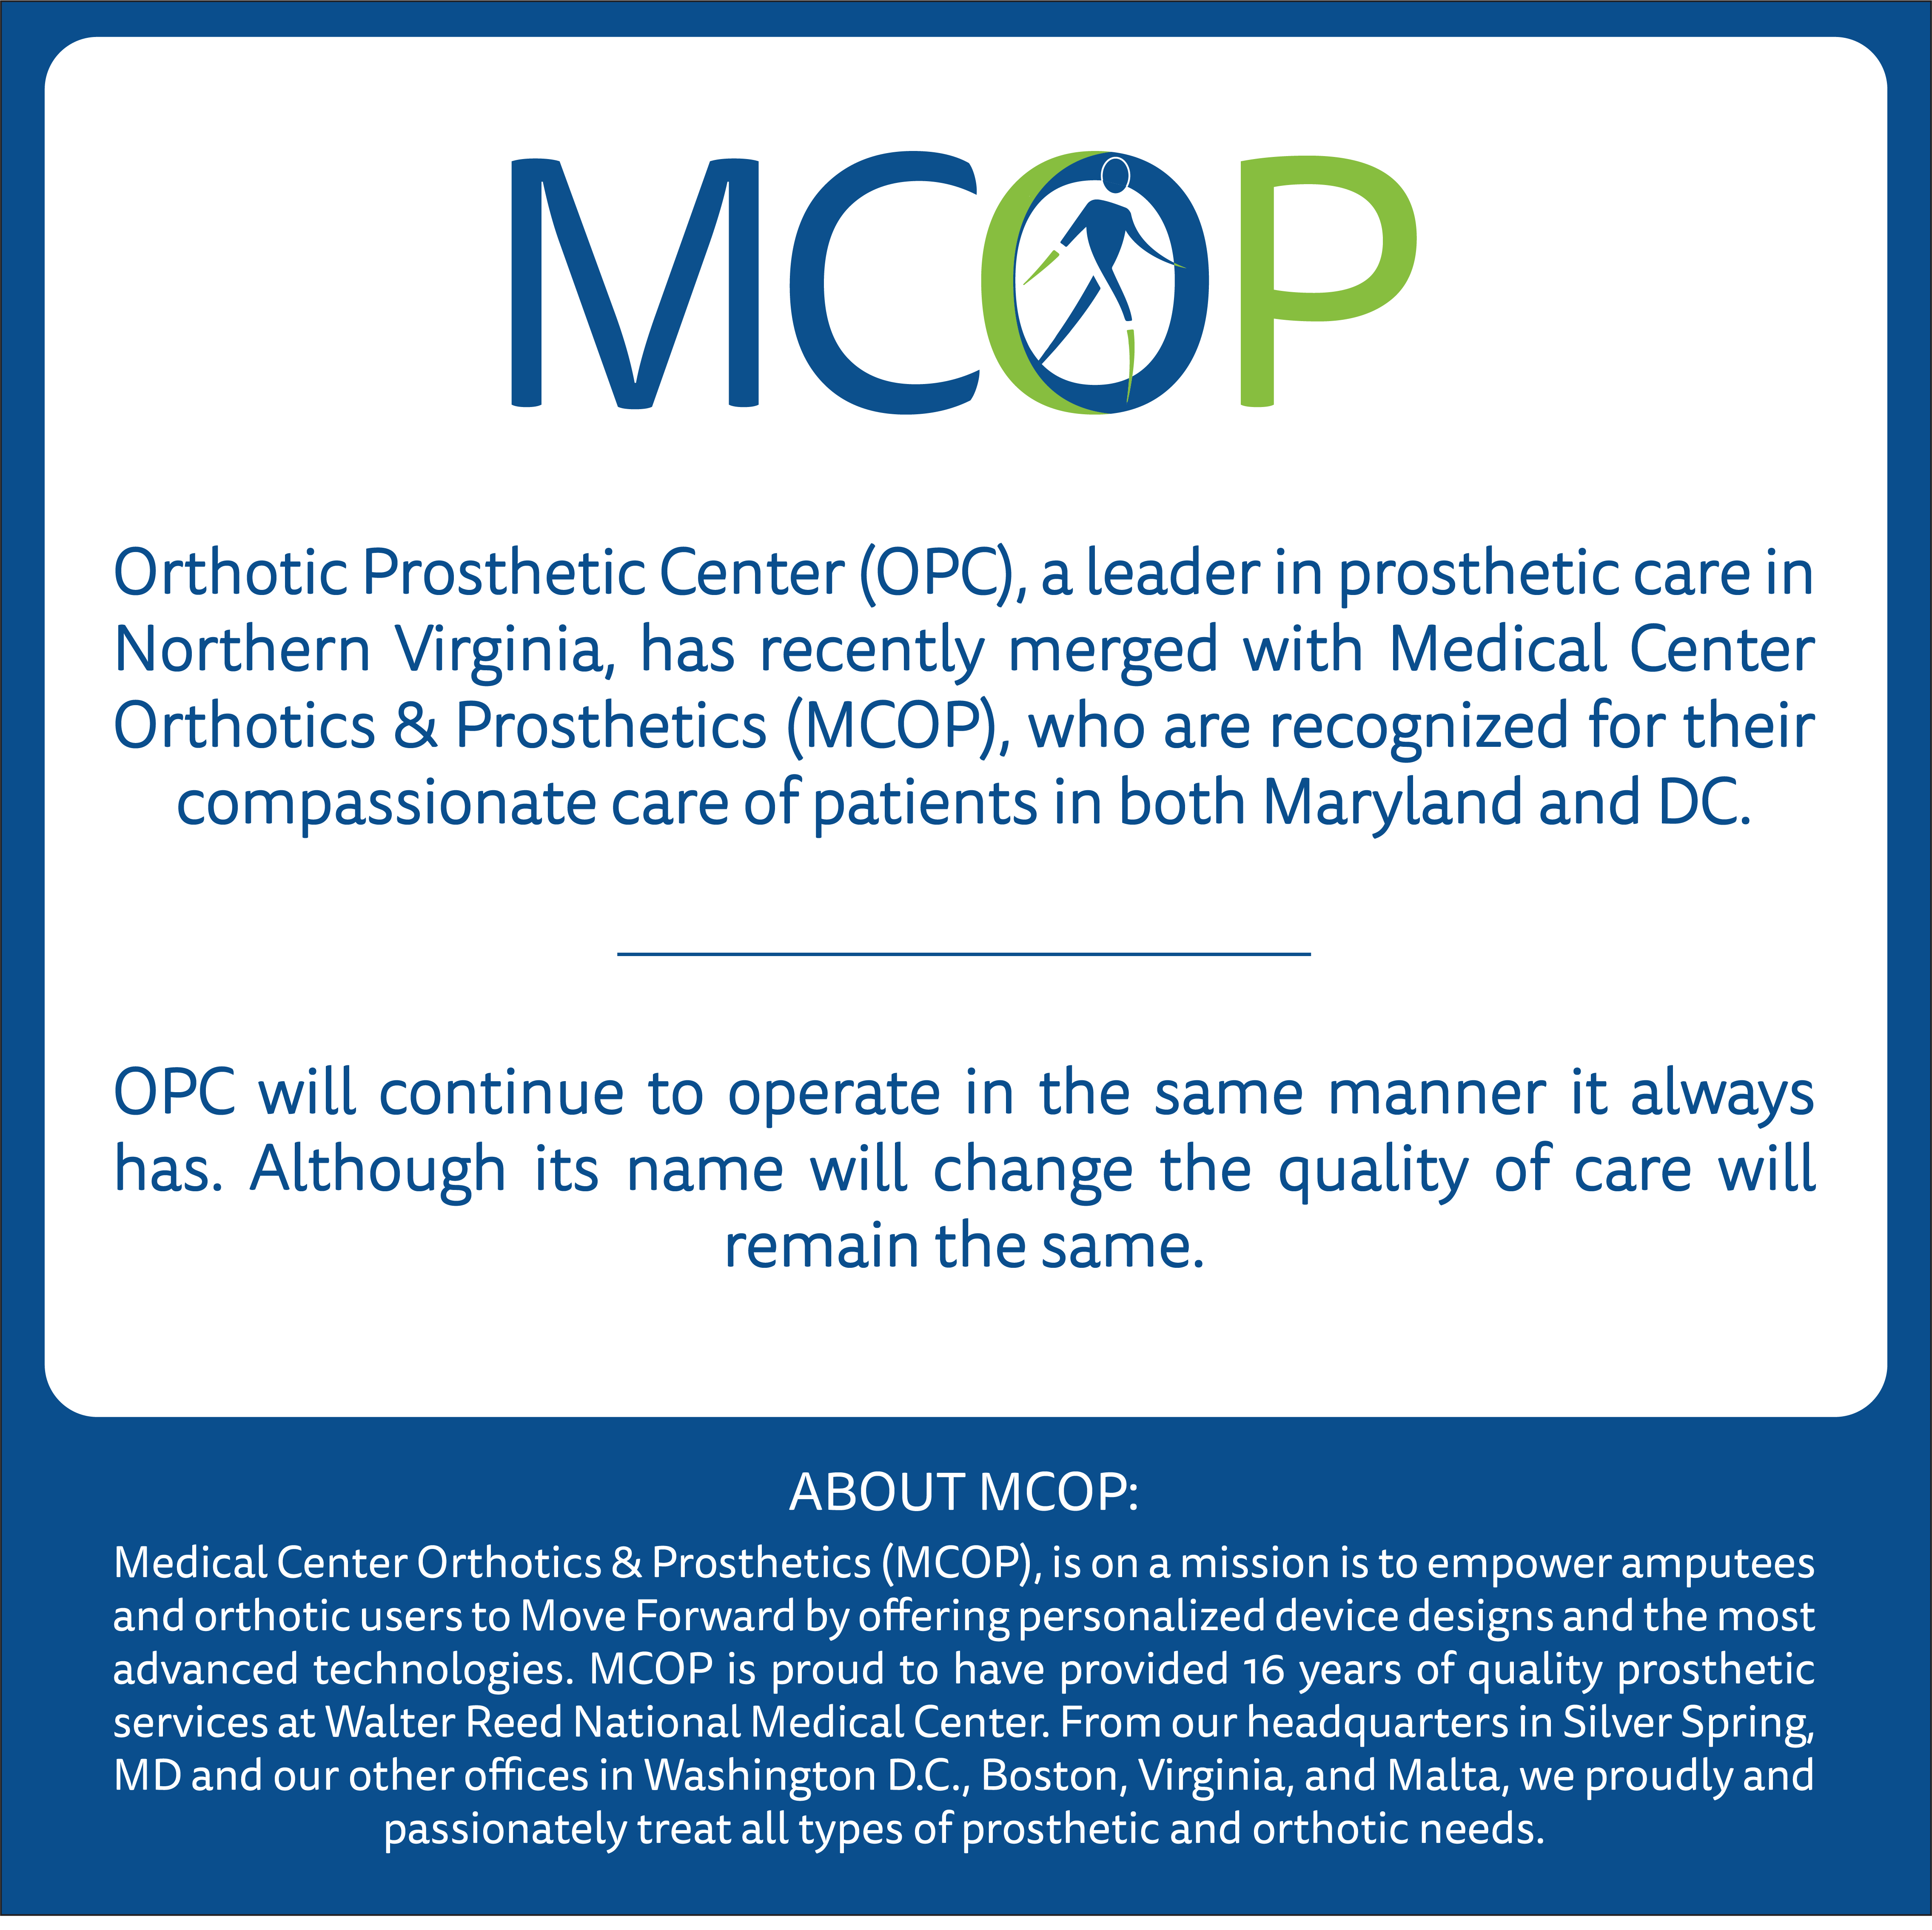 MCOP-branded infographic explaining the details of the MCOP/OPC merger